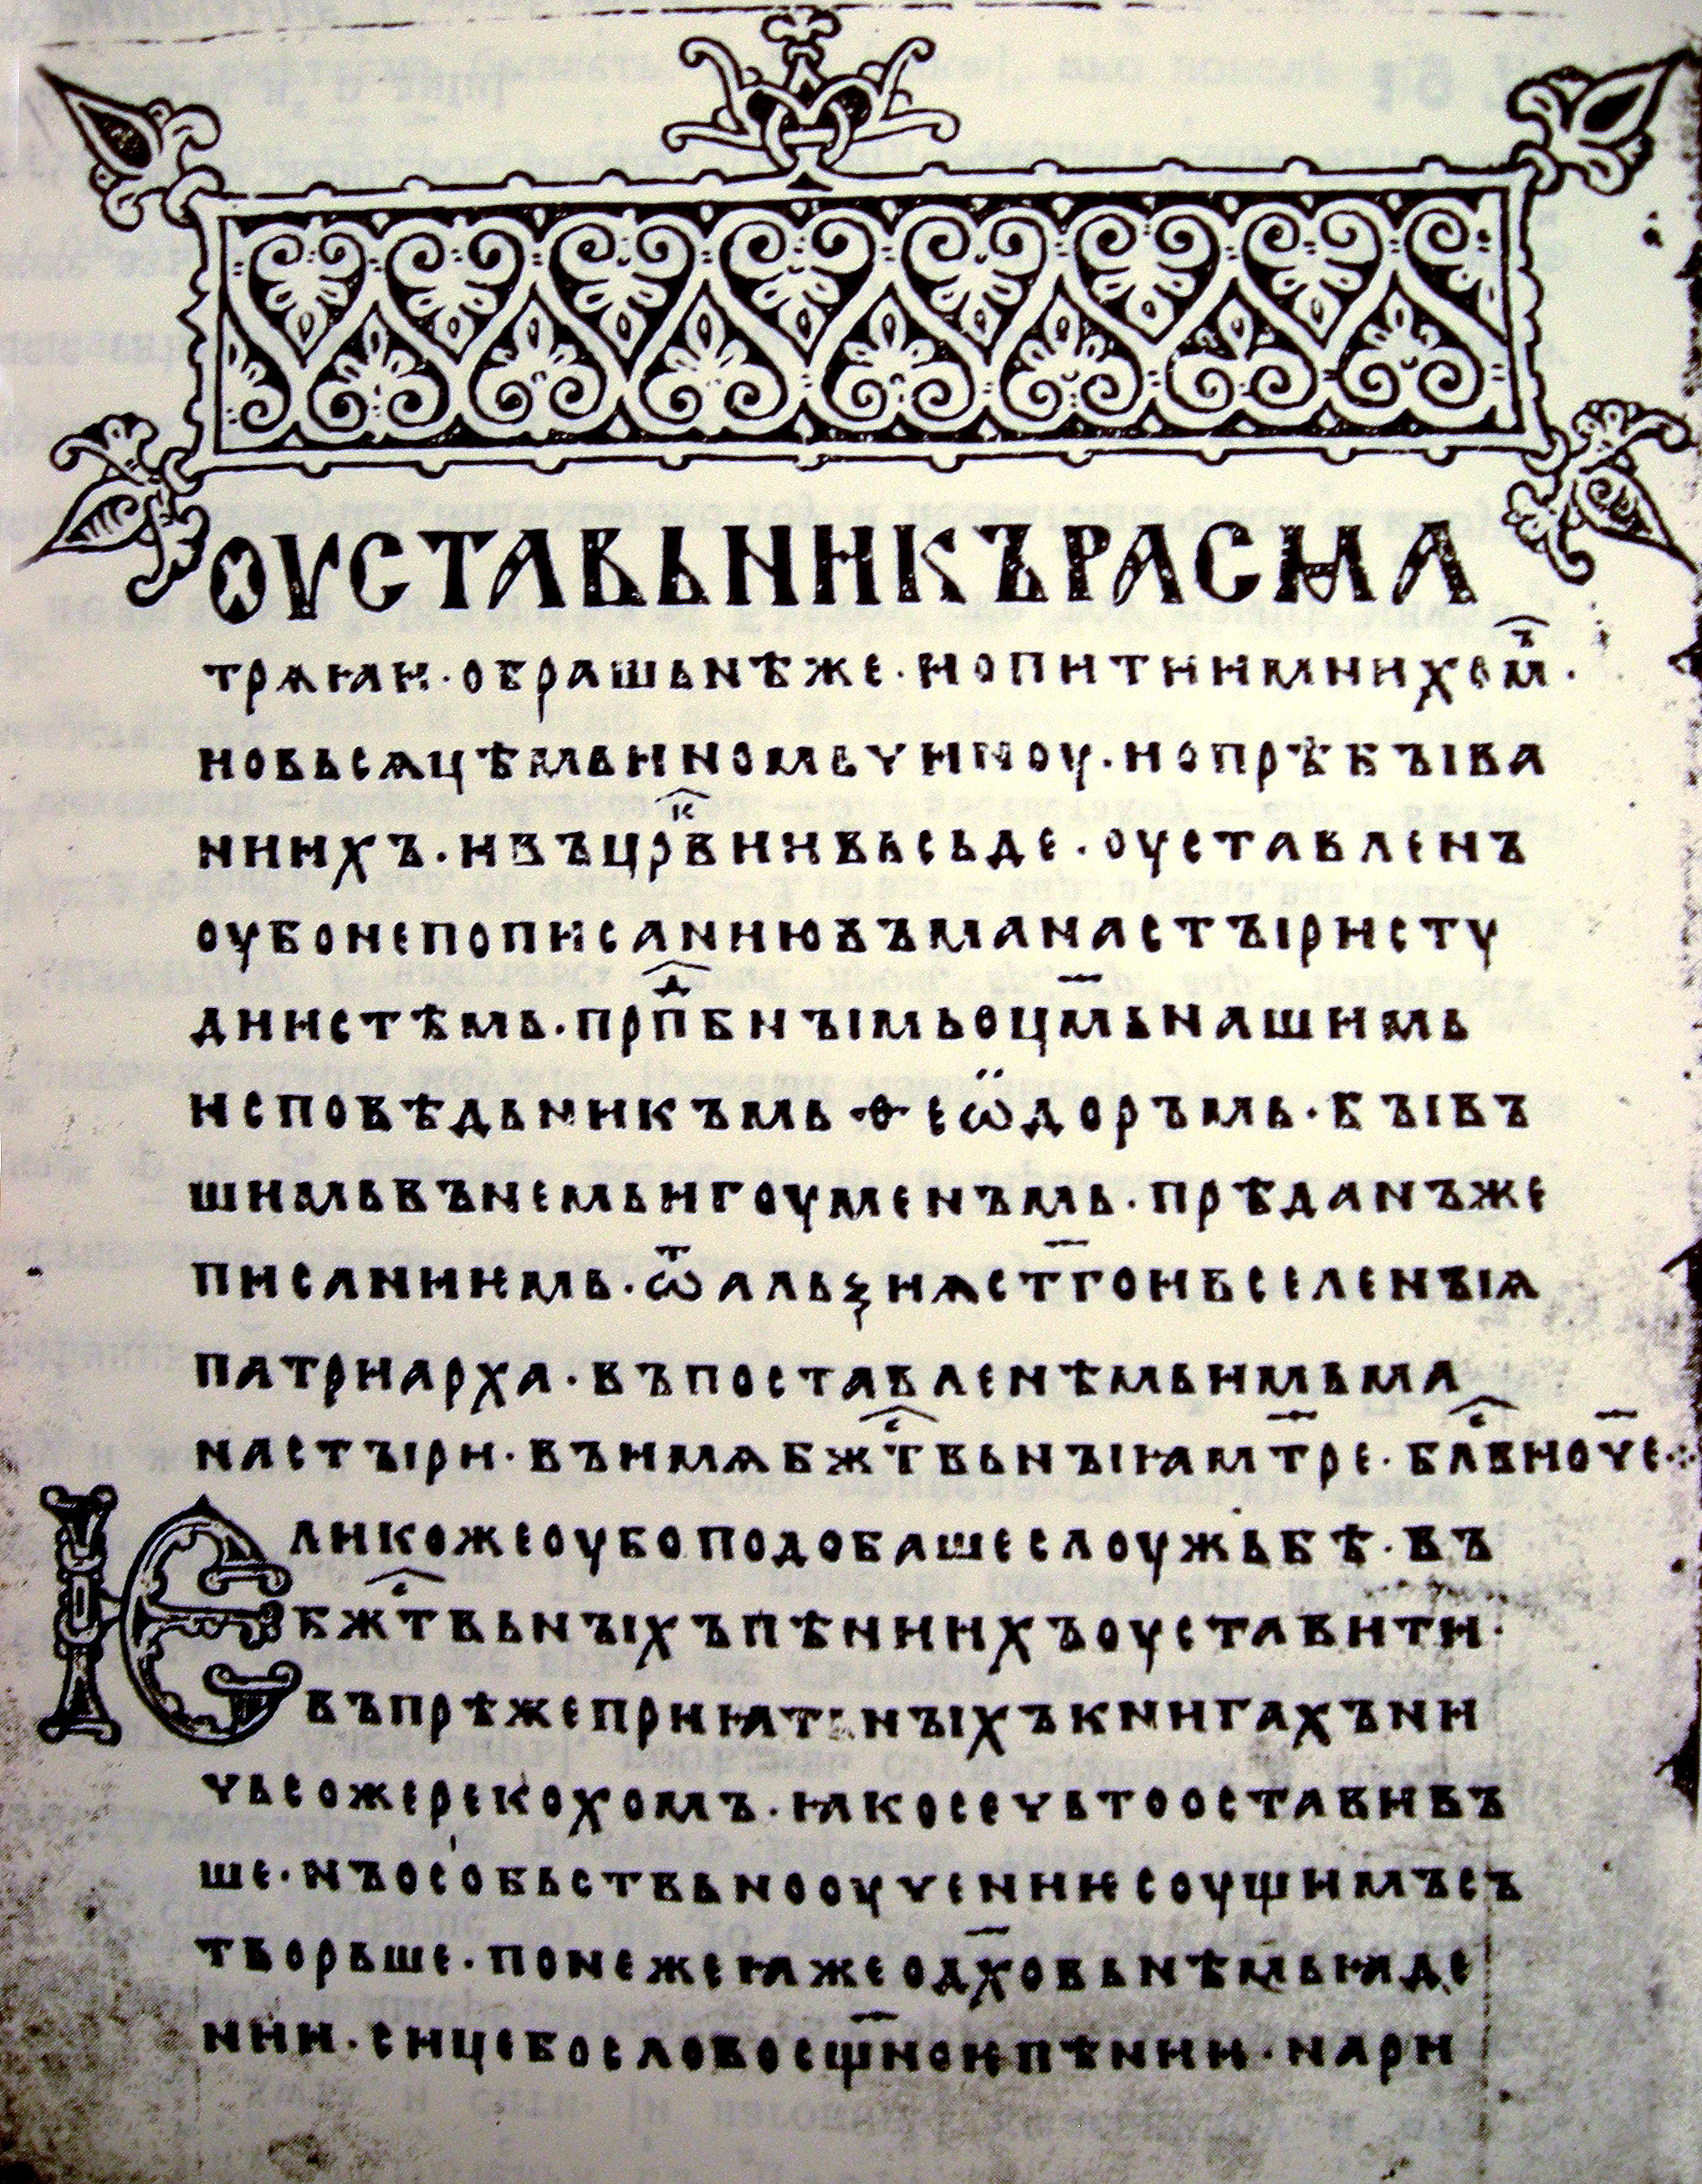 Most russians could not read the ornamentation of this document